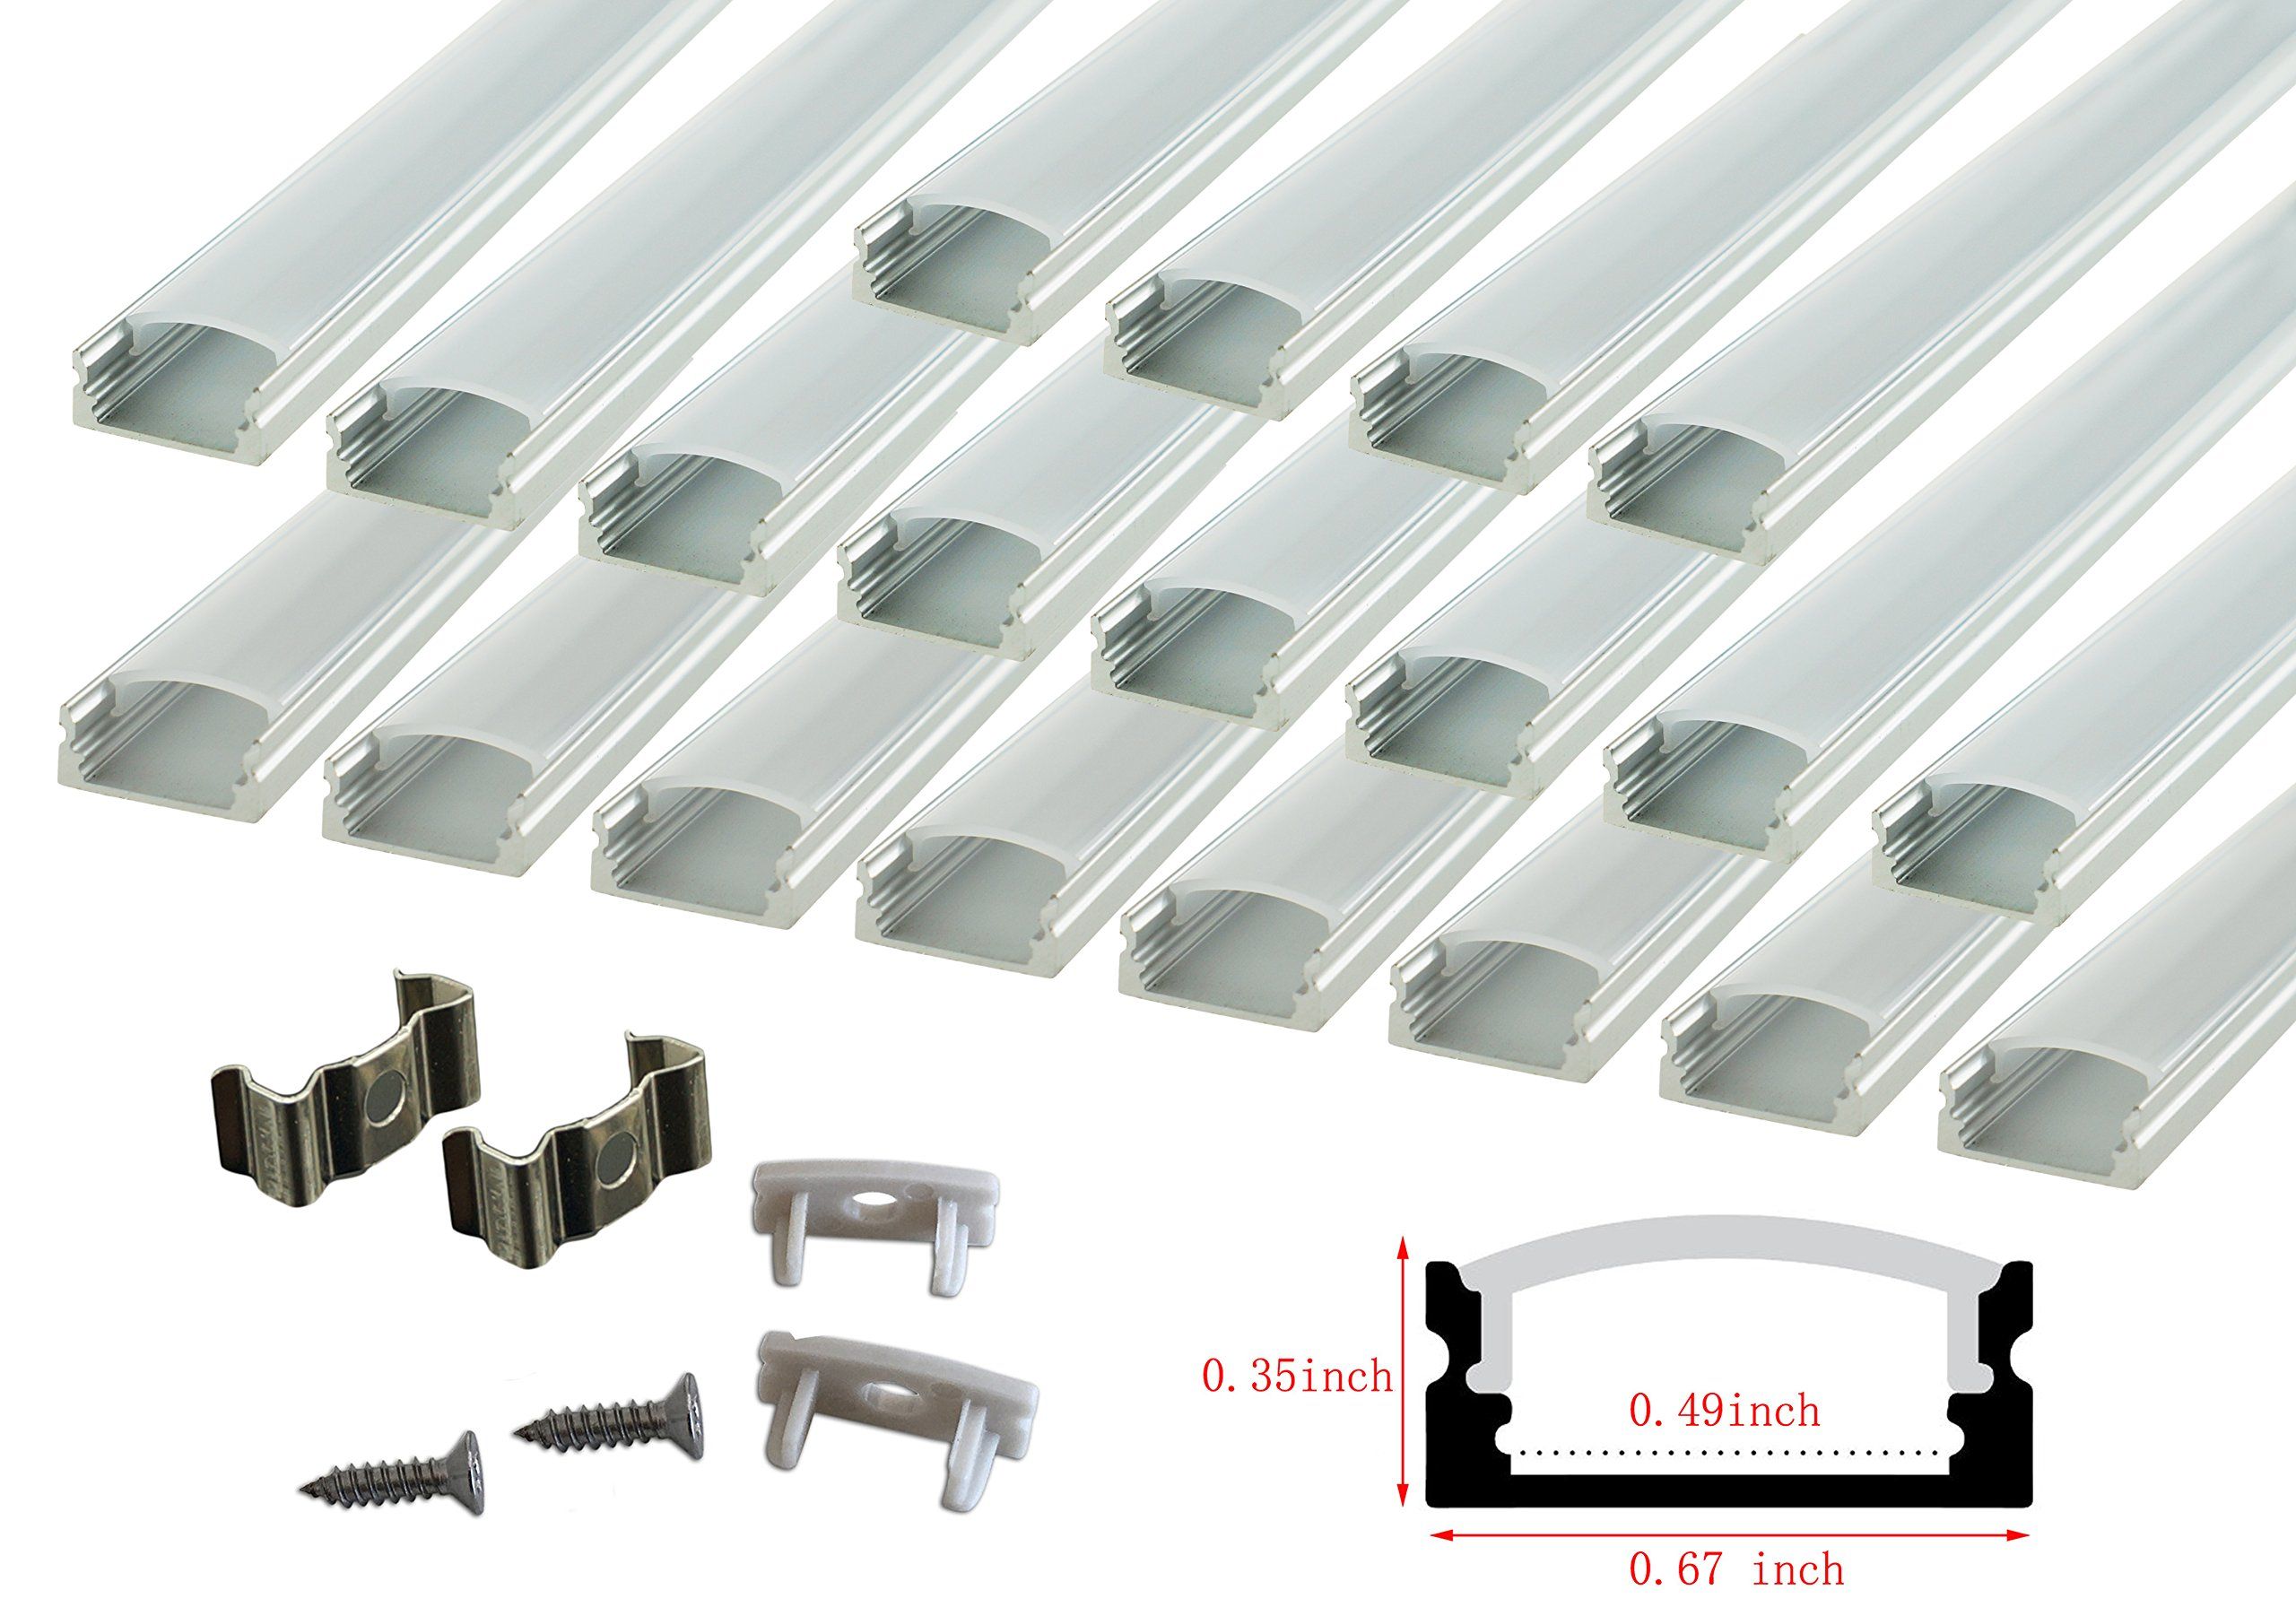 Muzata 20-Pack 3.3ft/1Meter U Shape LED Aluminum Channel System With Cover, End Caps and Mounting Clips, Aluminum Profile for LED Strip Light